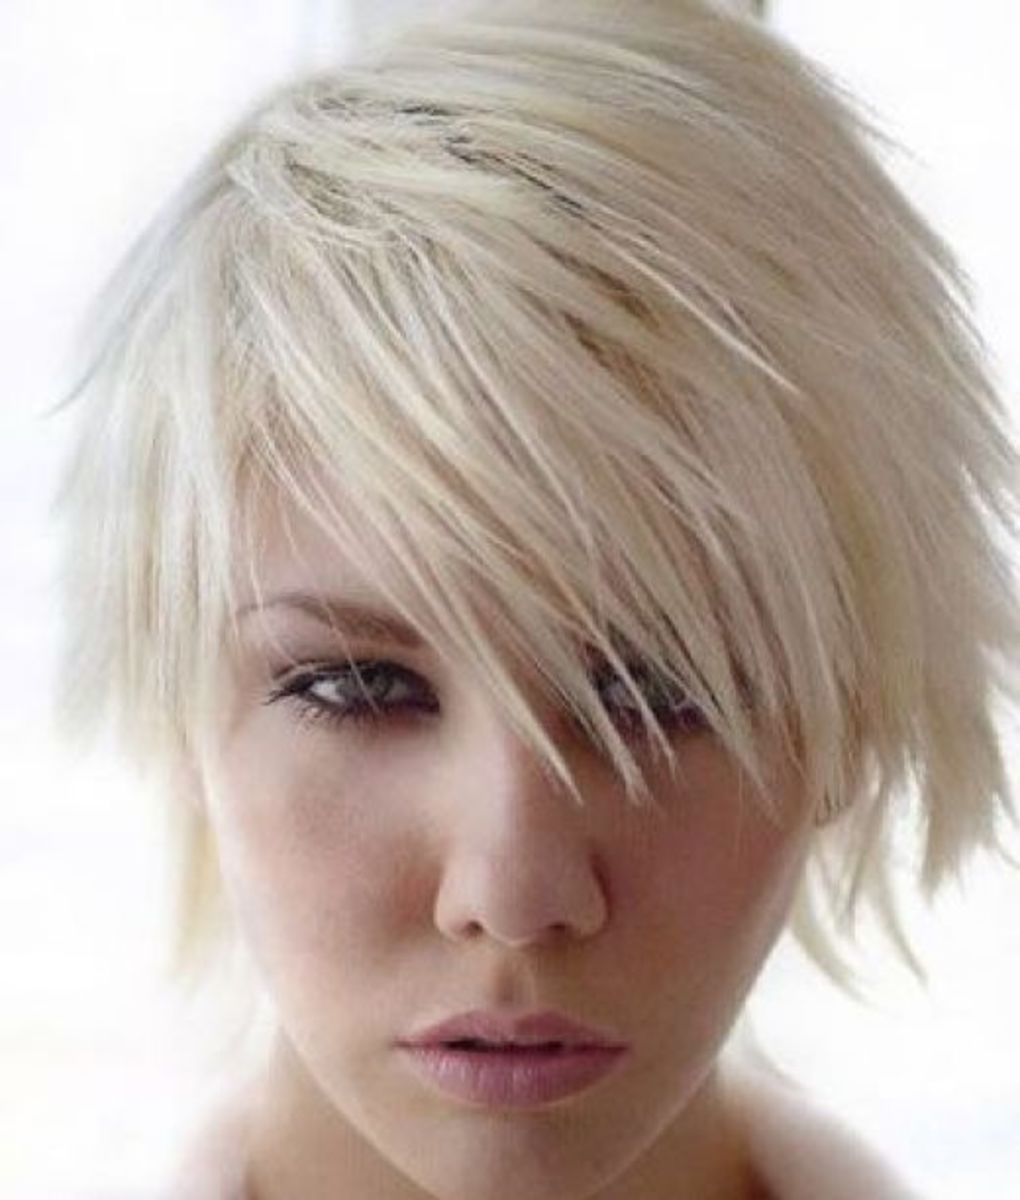 A popular short layered hairstyle these days is where the hair is longer at